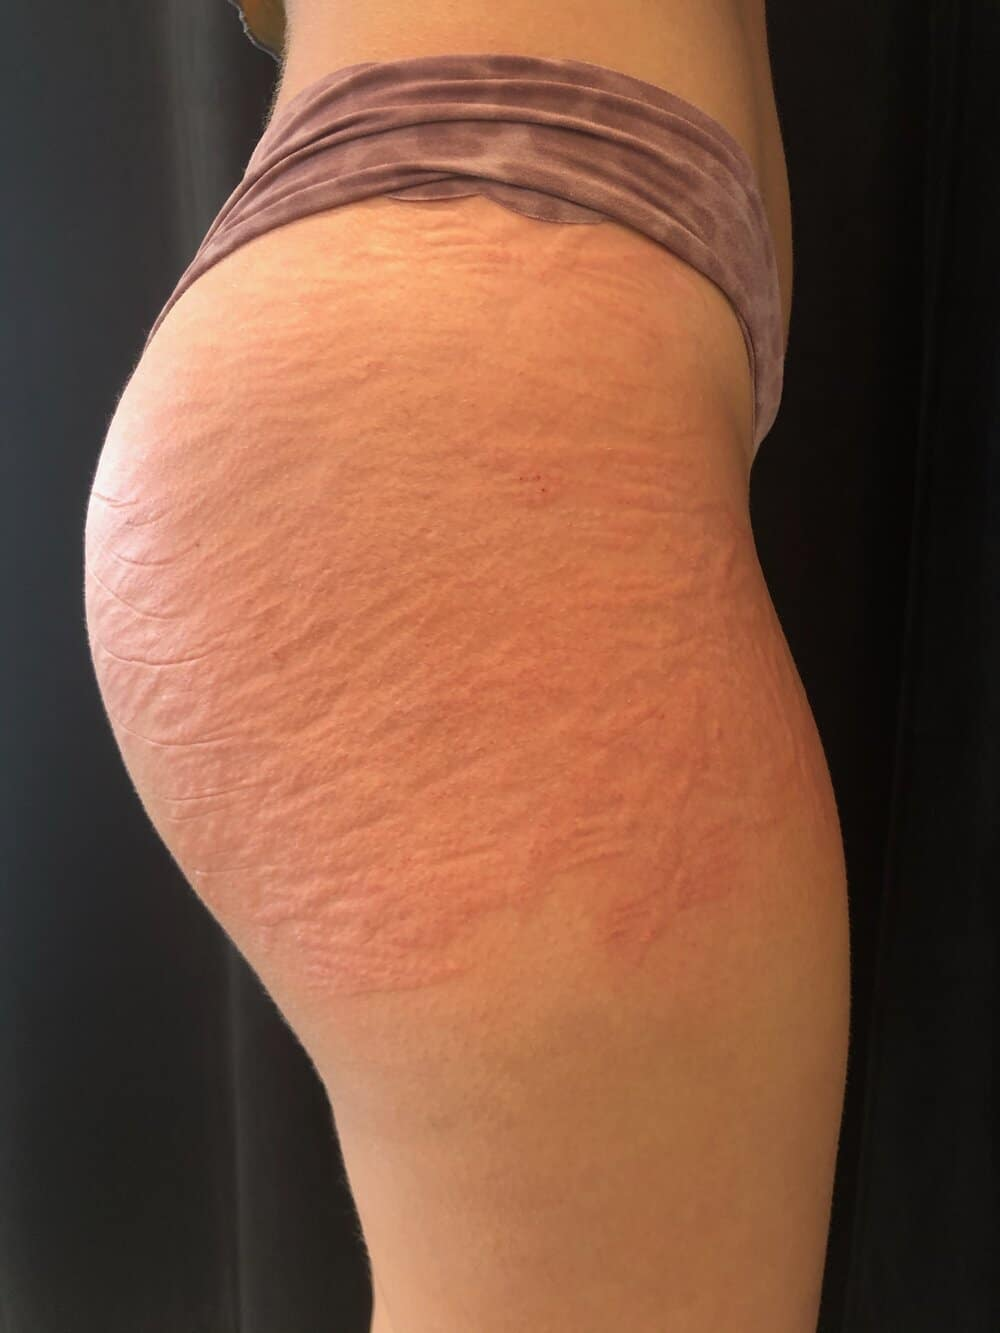 Immediately after first stretch mark tattoo  session- right side